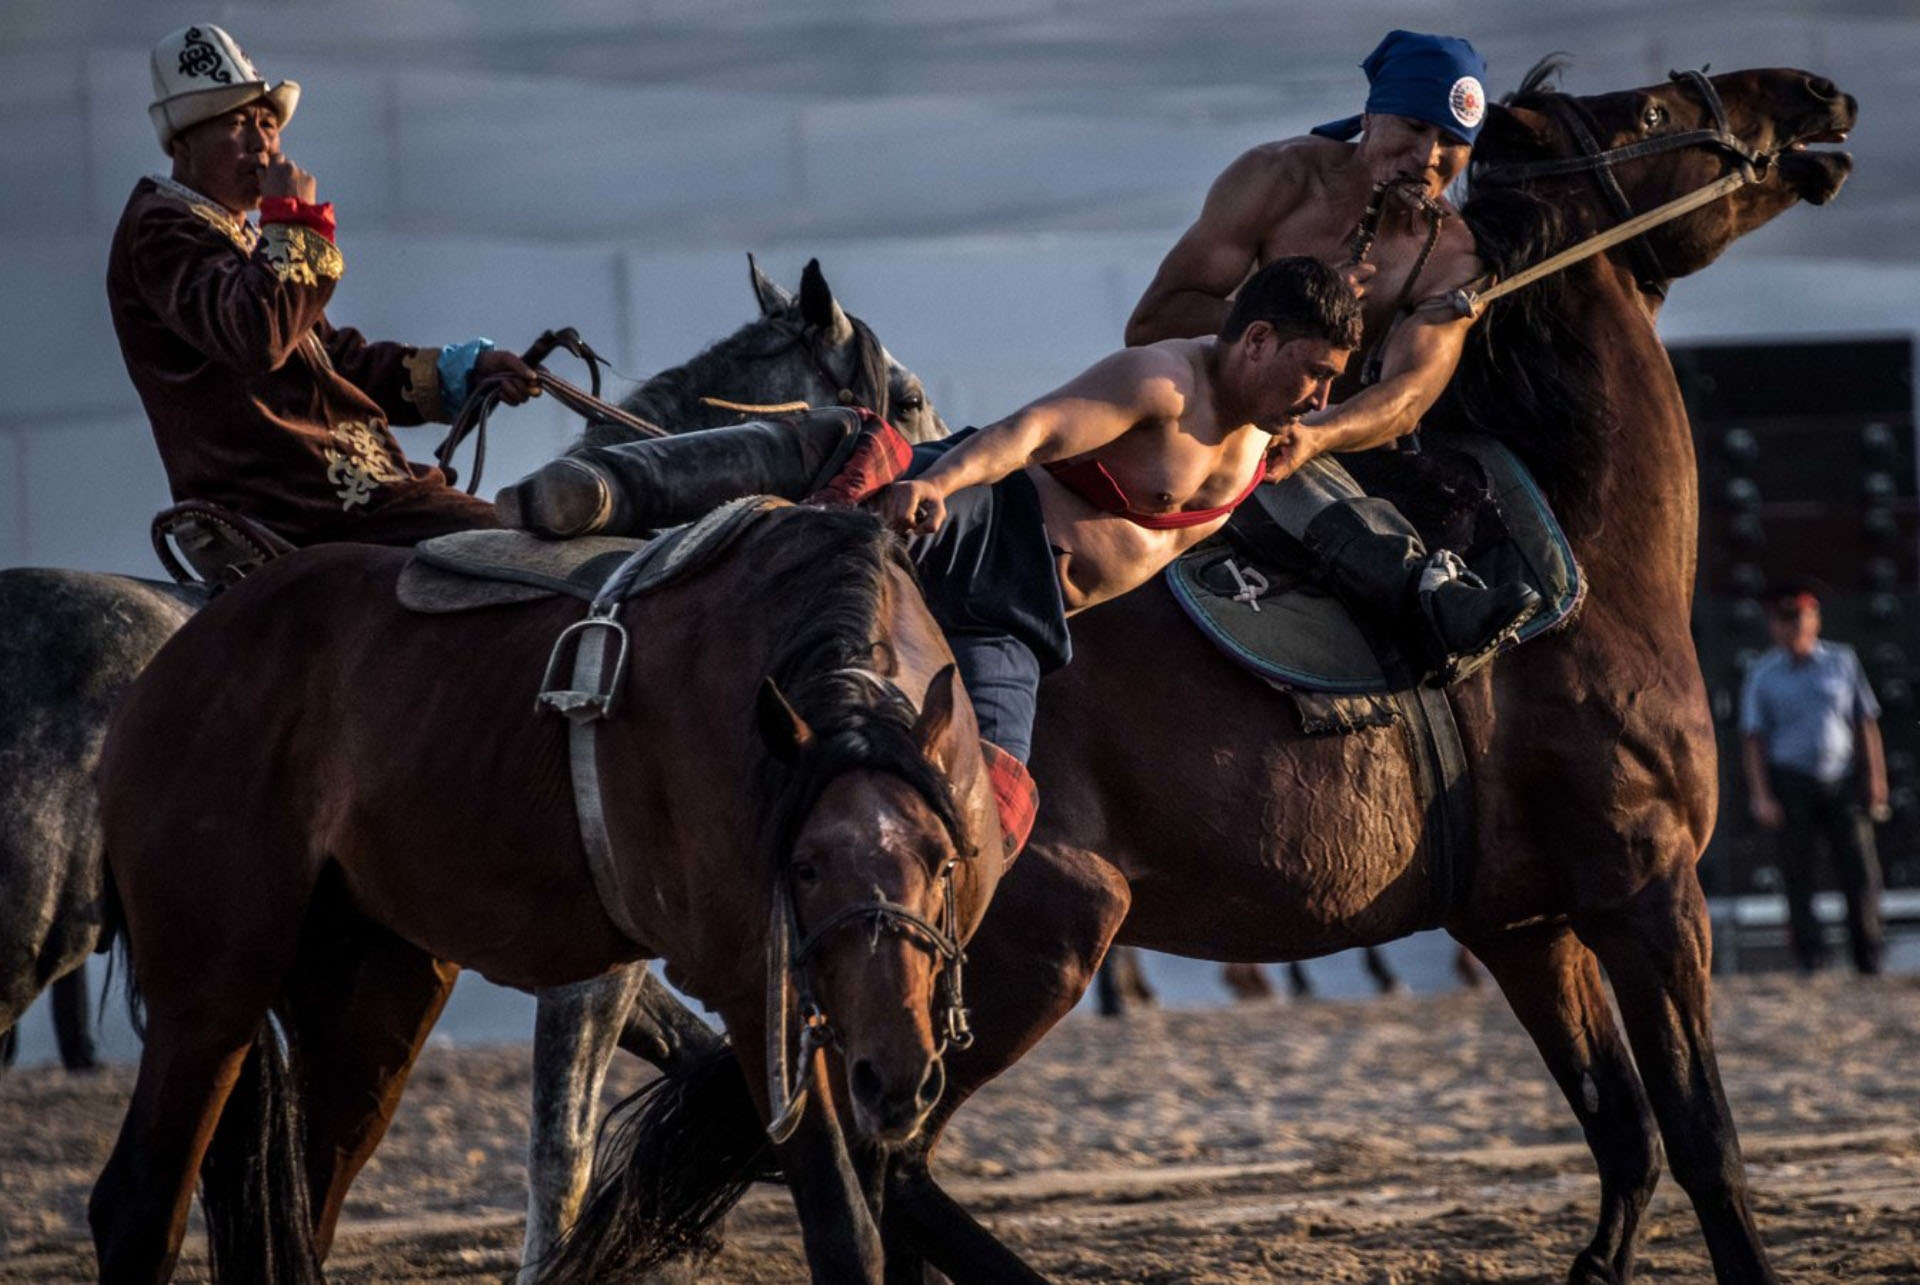 Kurosh Wrestling on Horseback